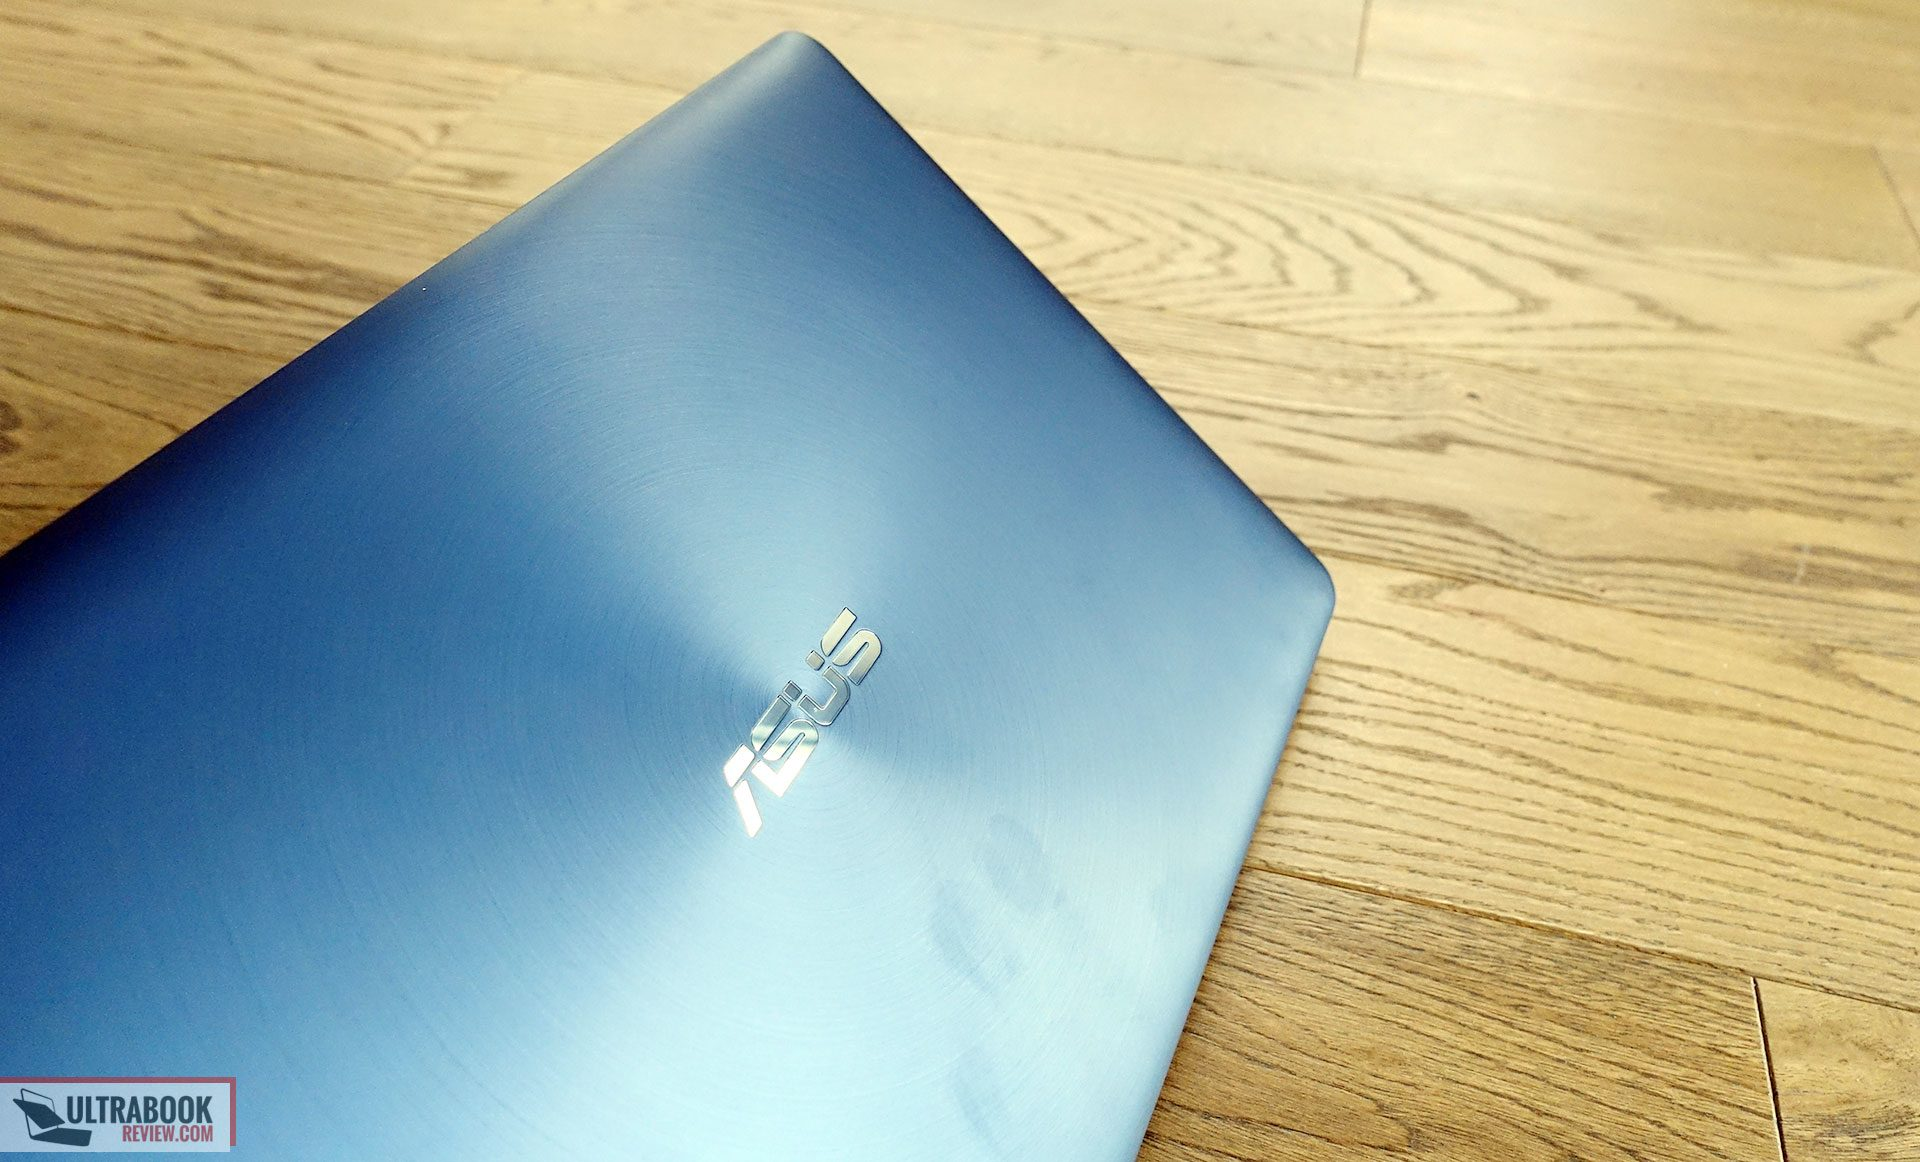 Asus Zenbook UX550VE review (i7-7700HQ, GTX 1050 Ti) and how